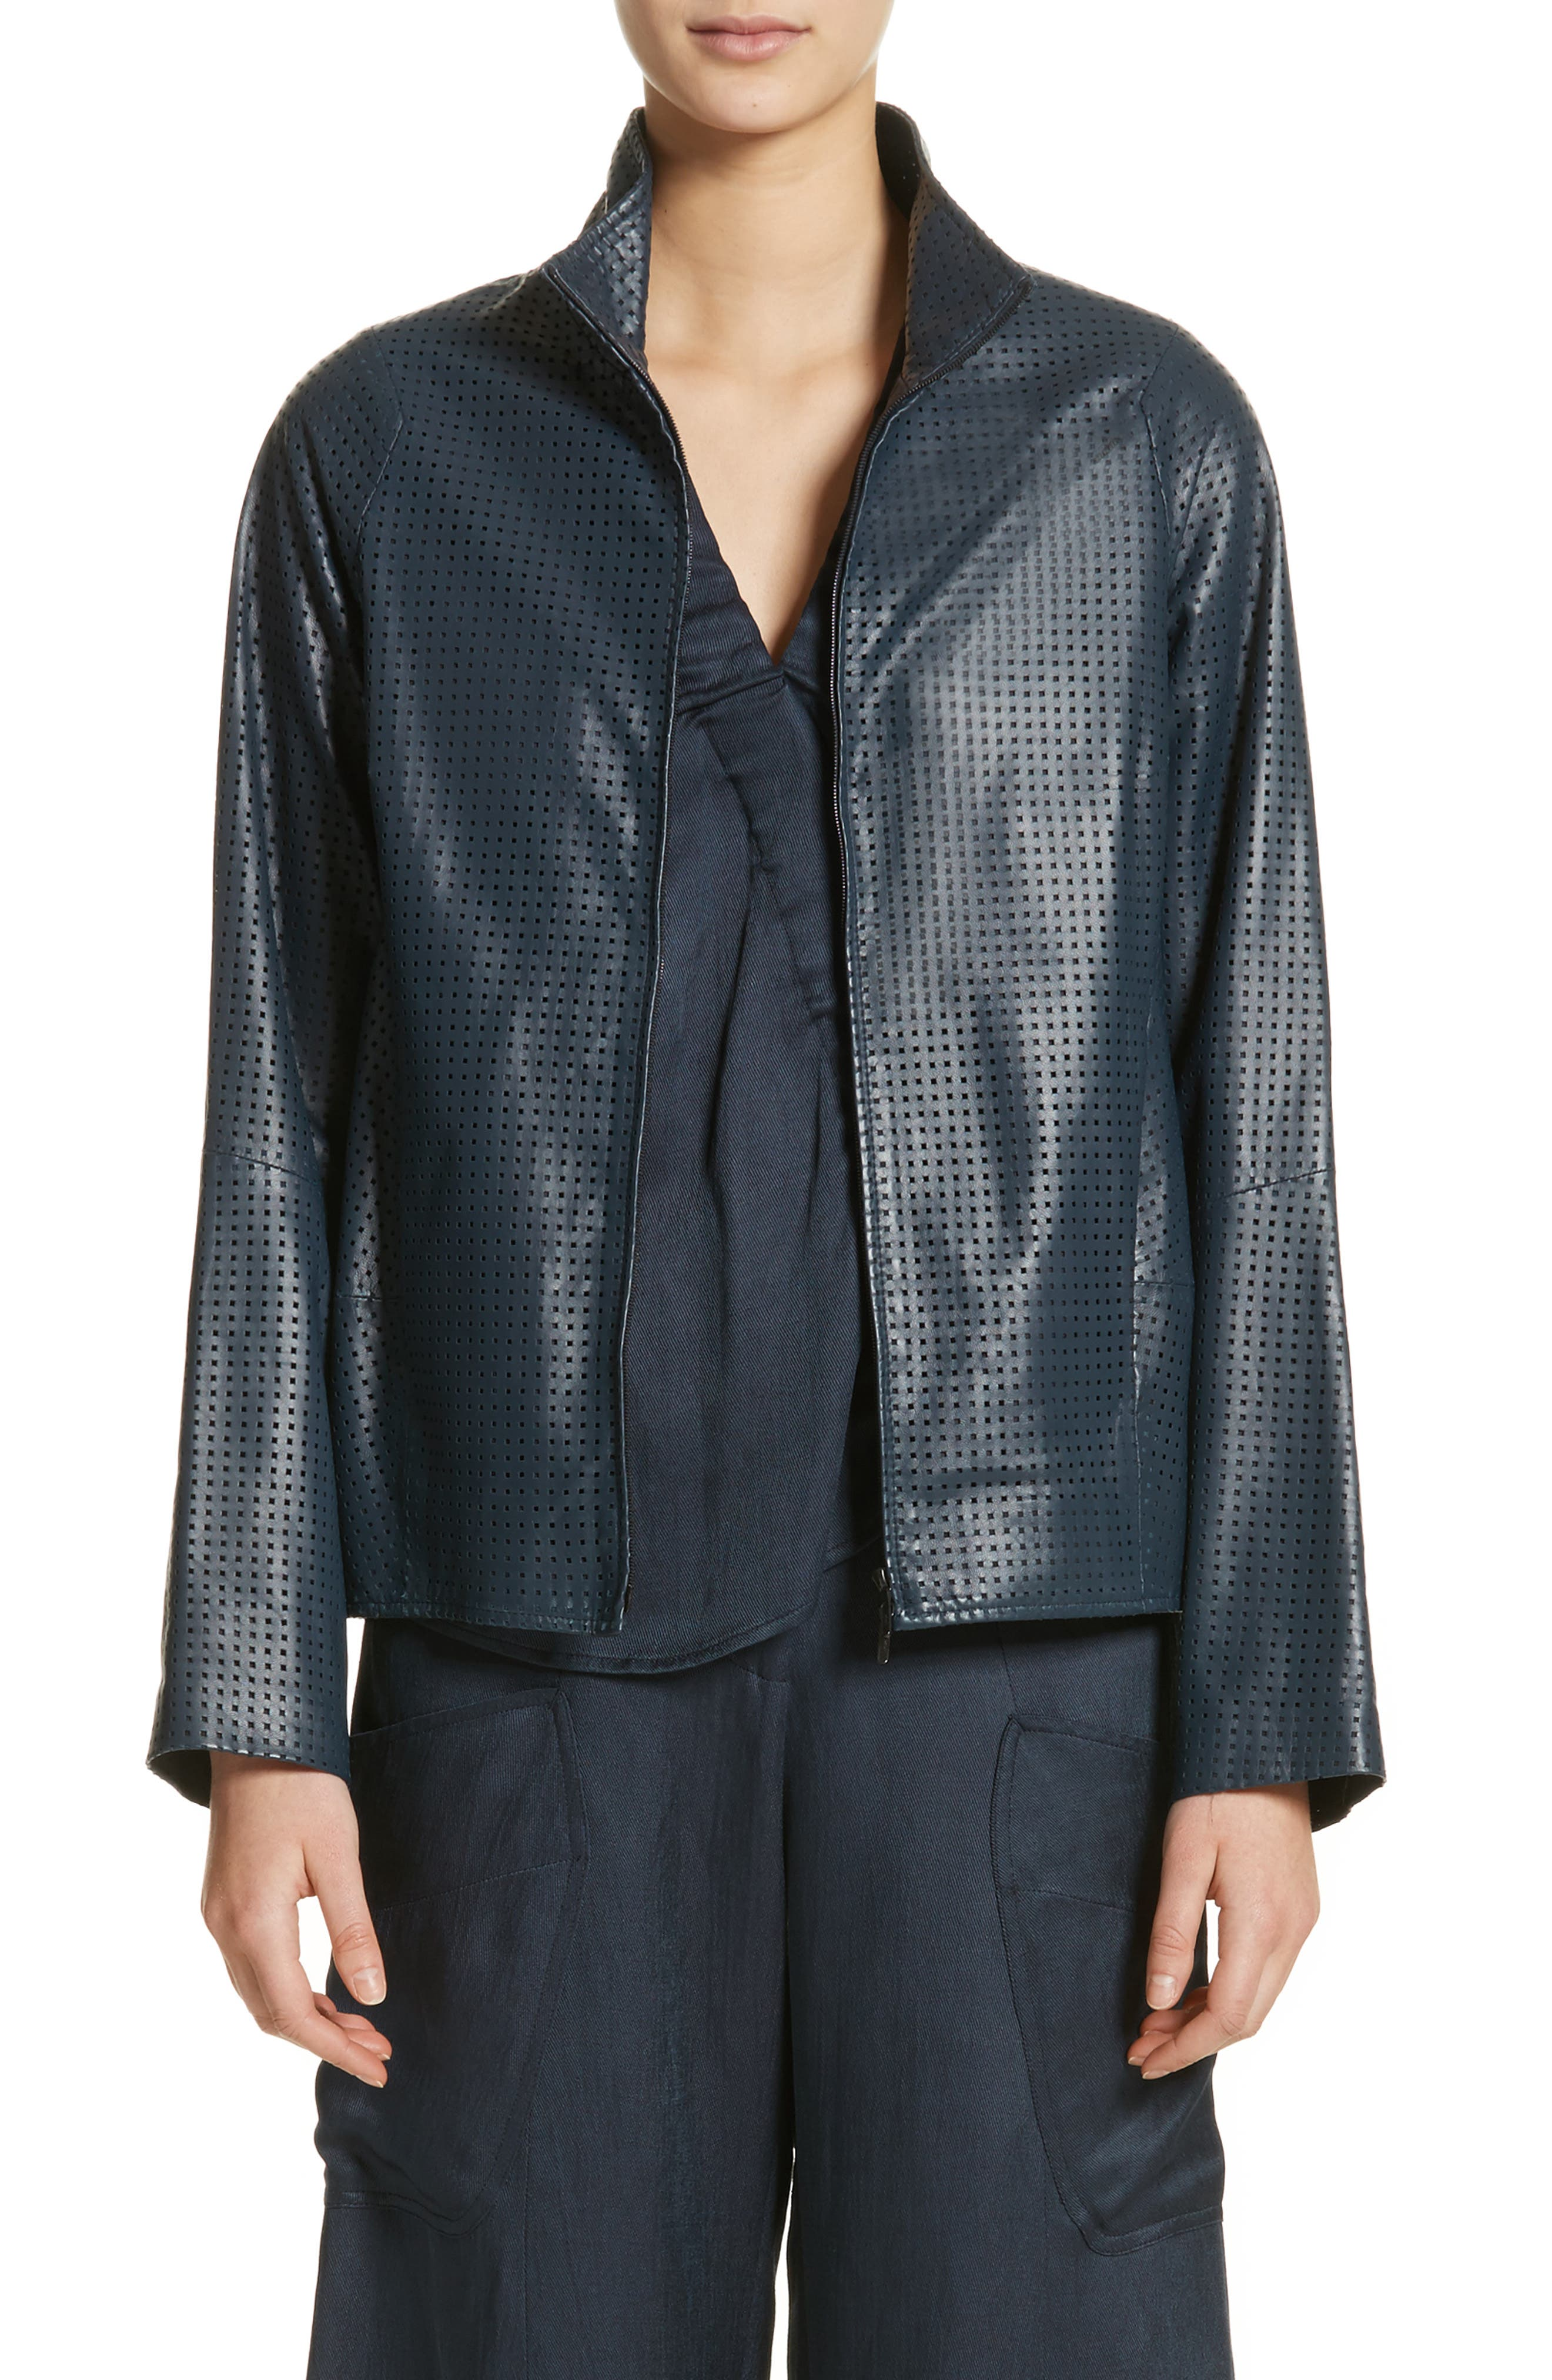 Perforated Nappa Leather Jacket,                         Main,                         color, Ink Jet